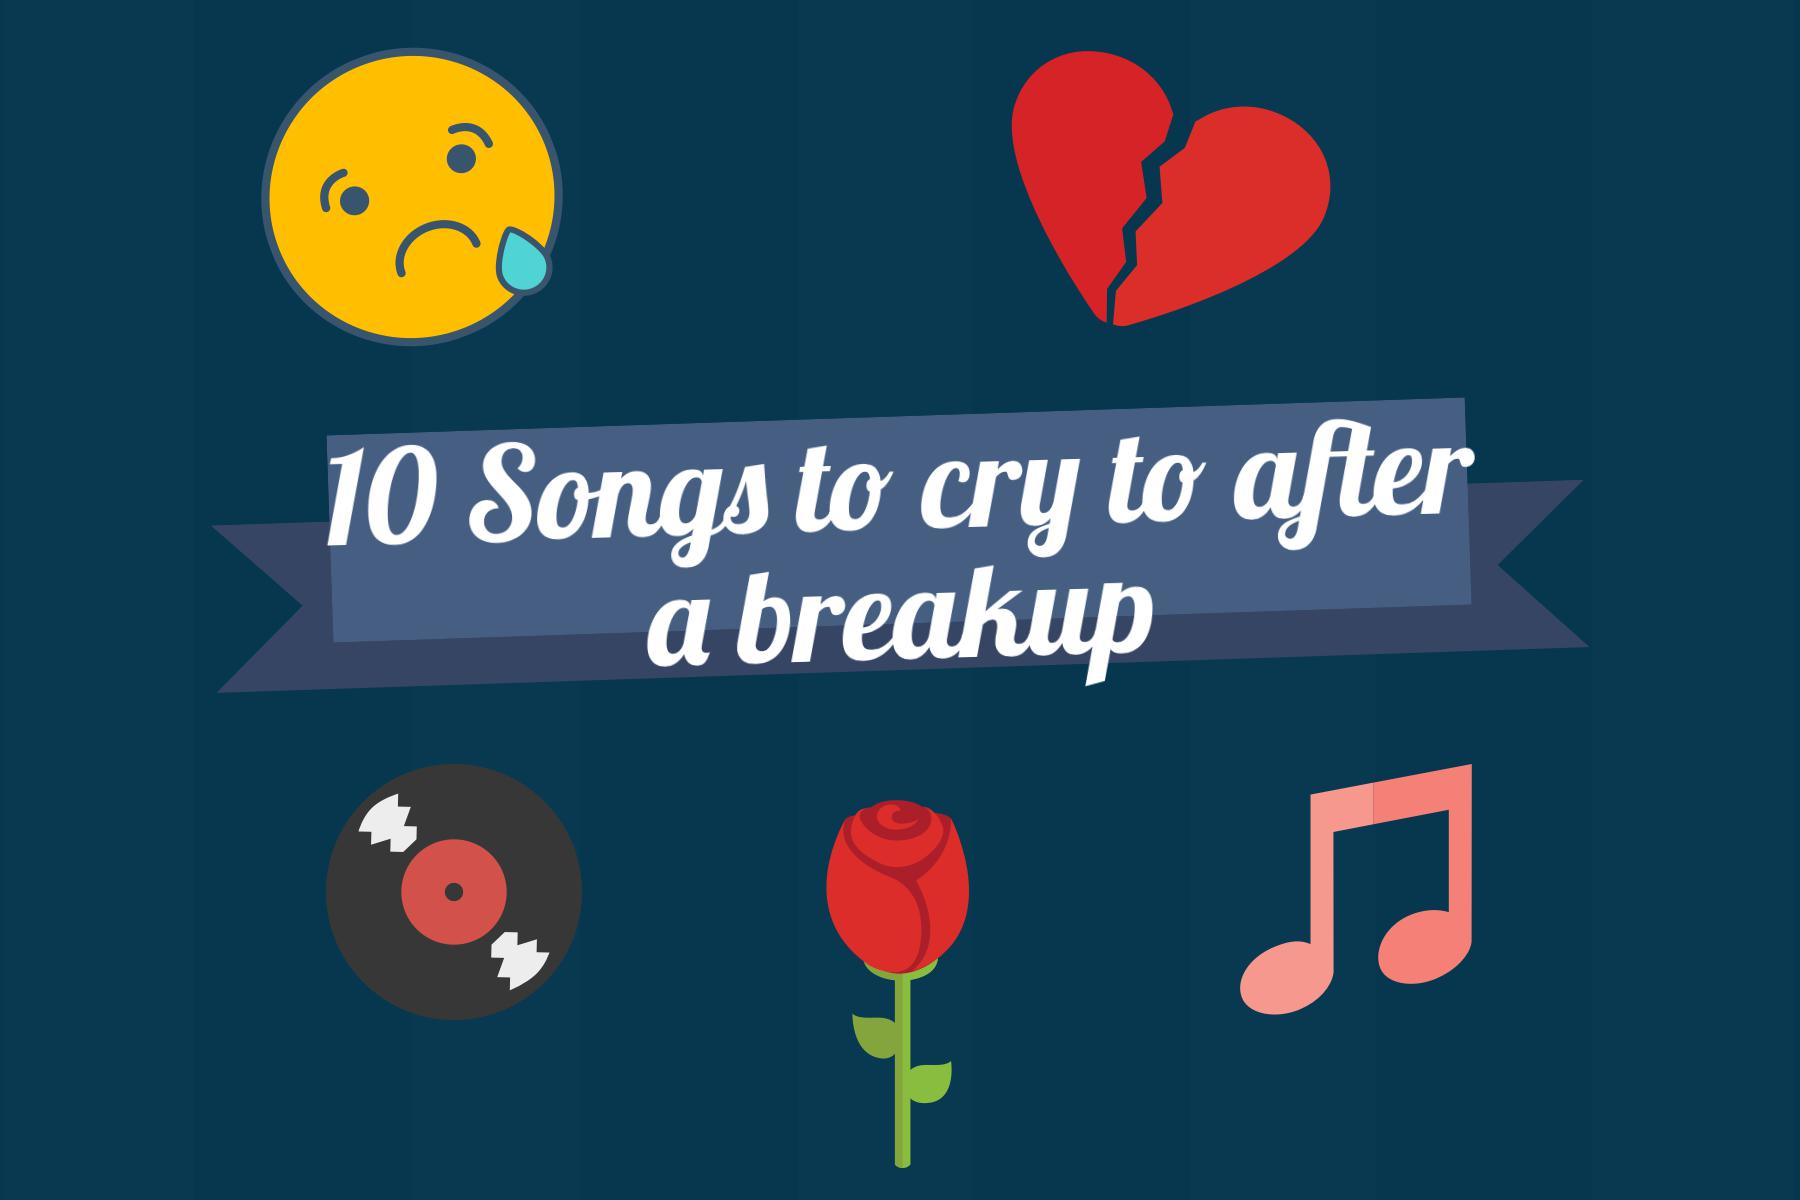 Here's a playlist for anyone who has a broken heart and needs to listen to the best tear-jerker songs as they wallow in self pity. Nothing is more cathartic than confronting ones emotions and having a good cry to get over their significant other.